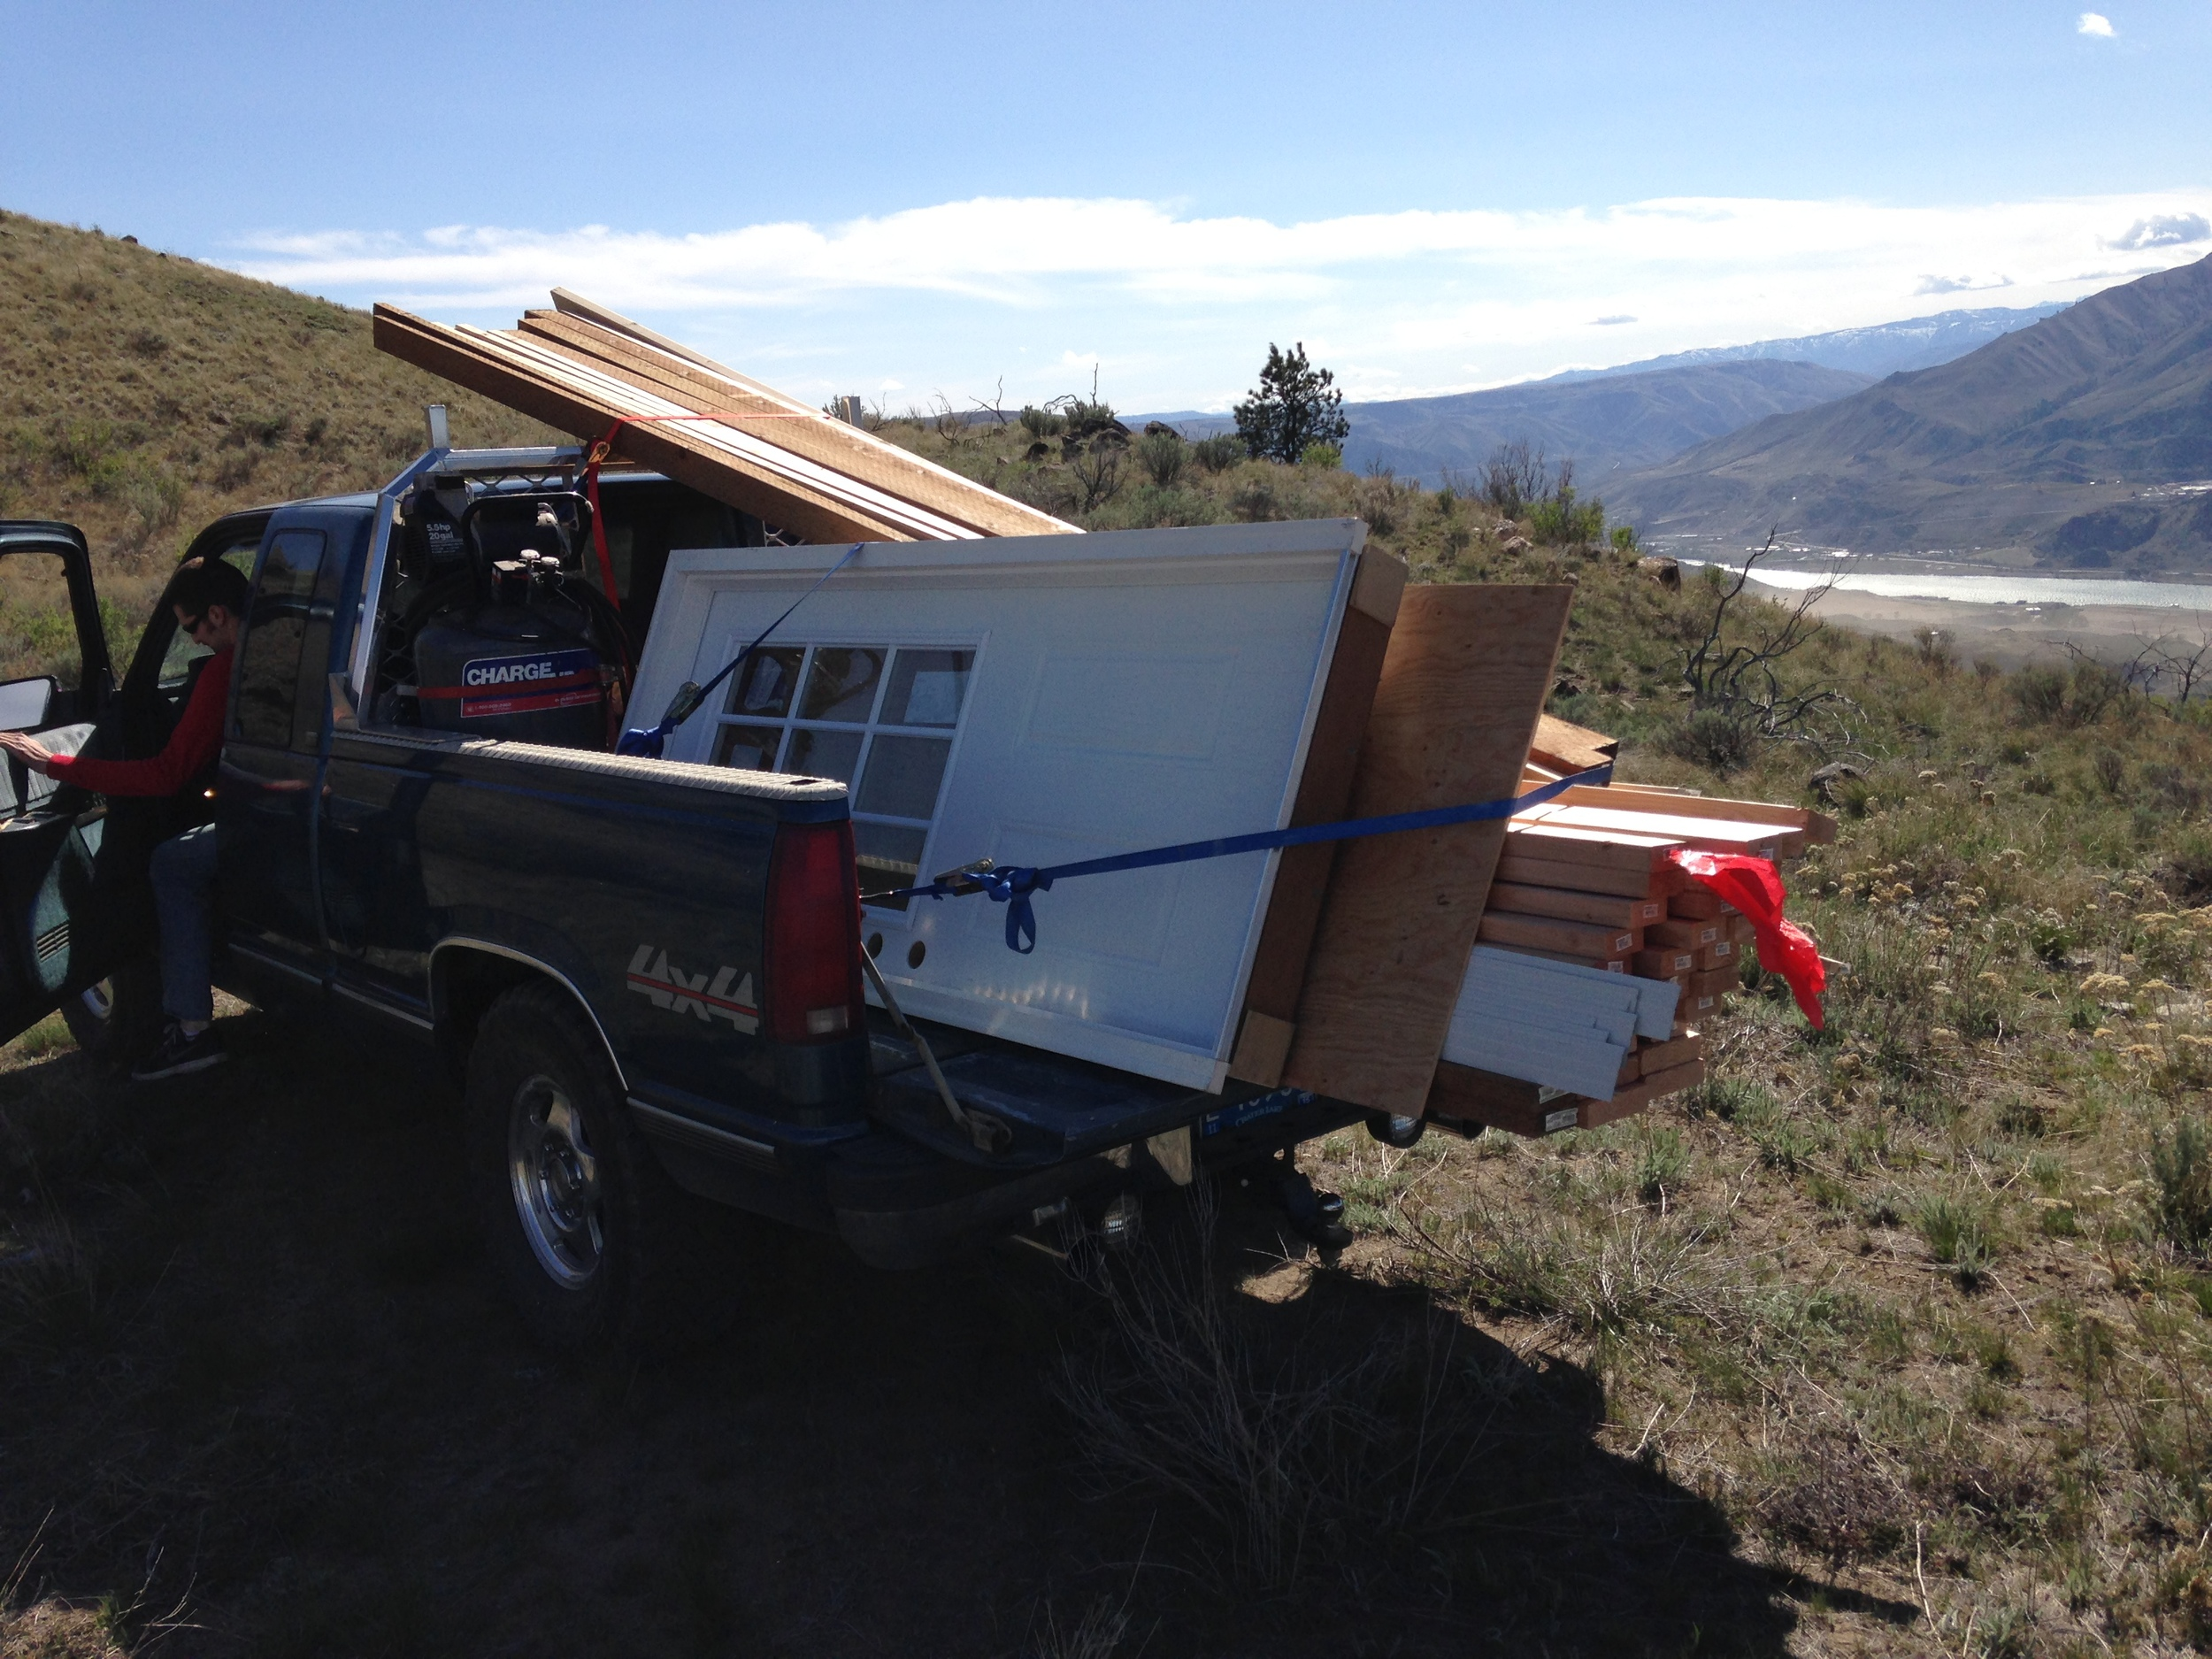 Alex's truck hauled all the lumber and materials.